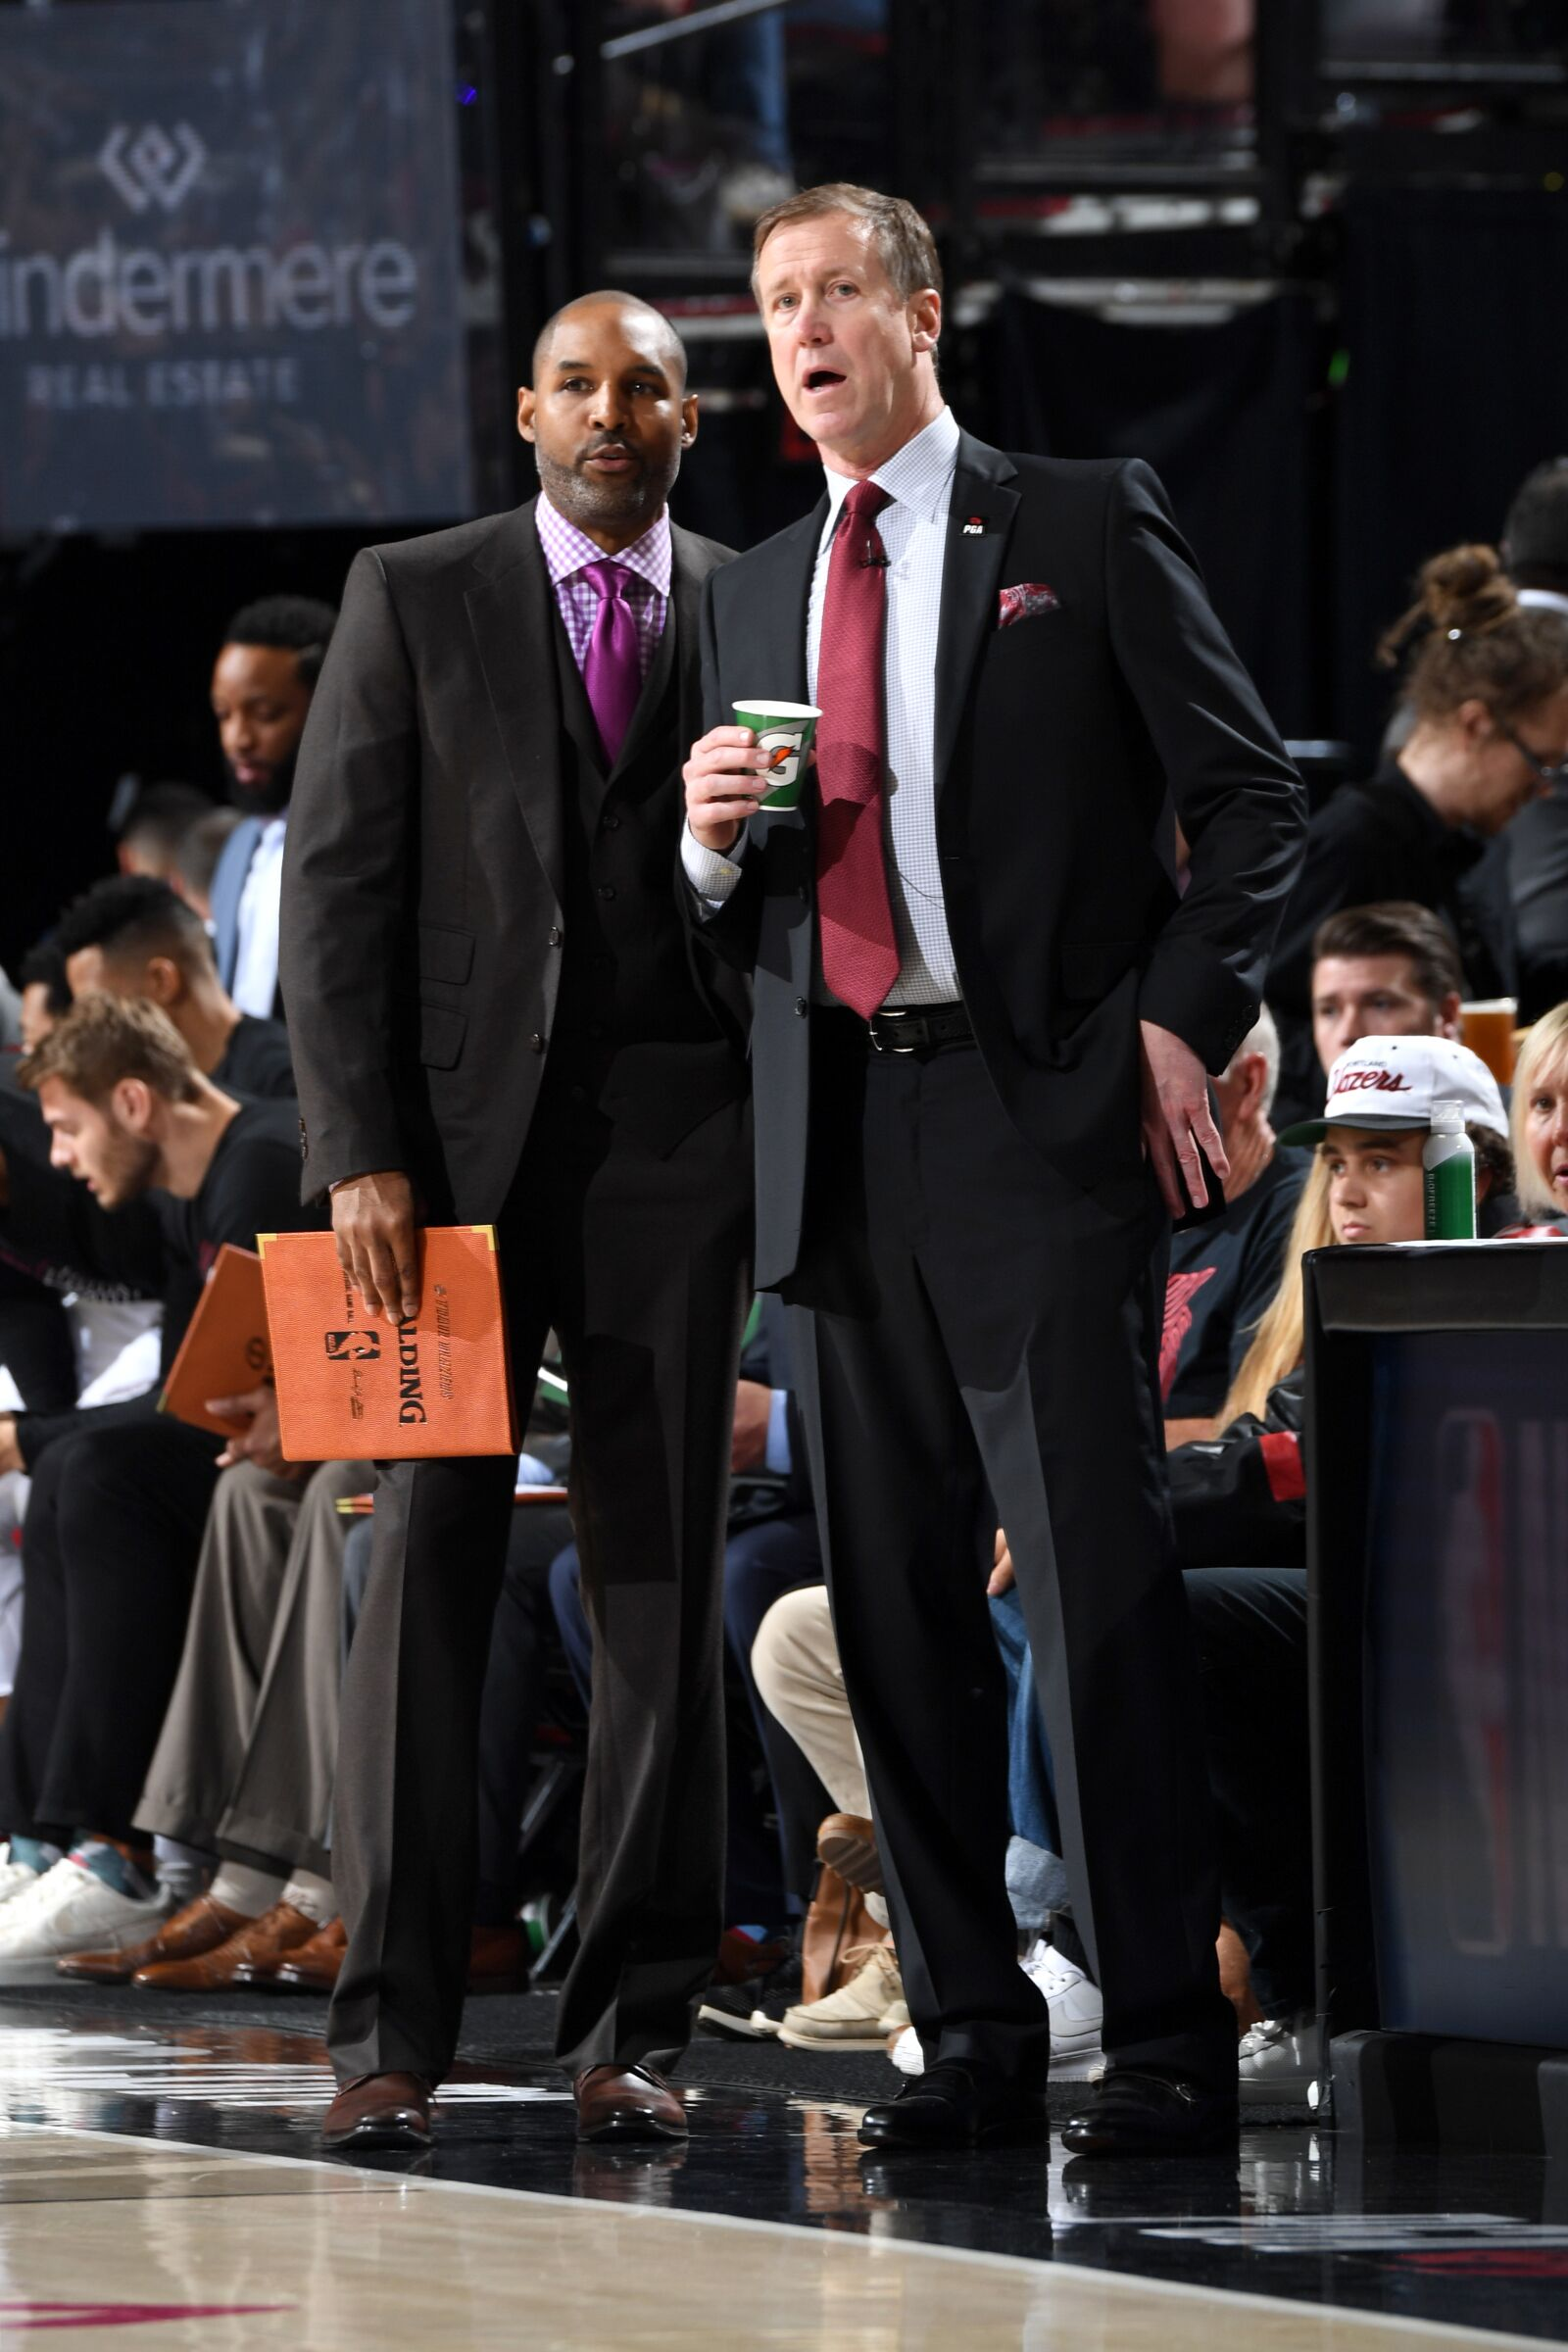 Portland's David Vanterpool joining Timberwolves staff